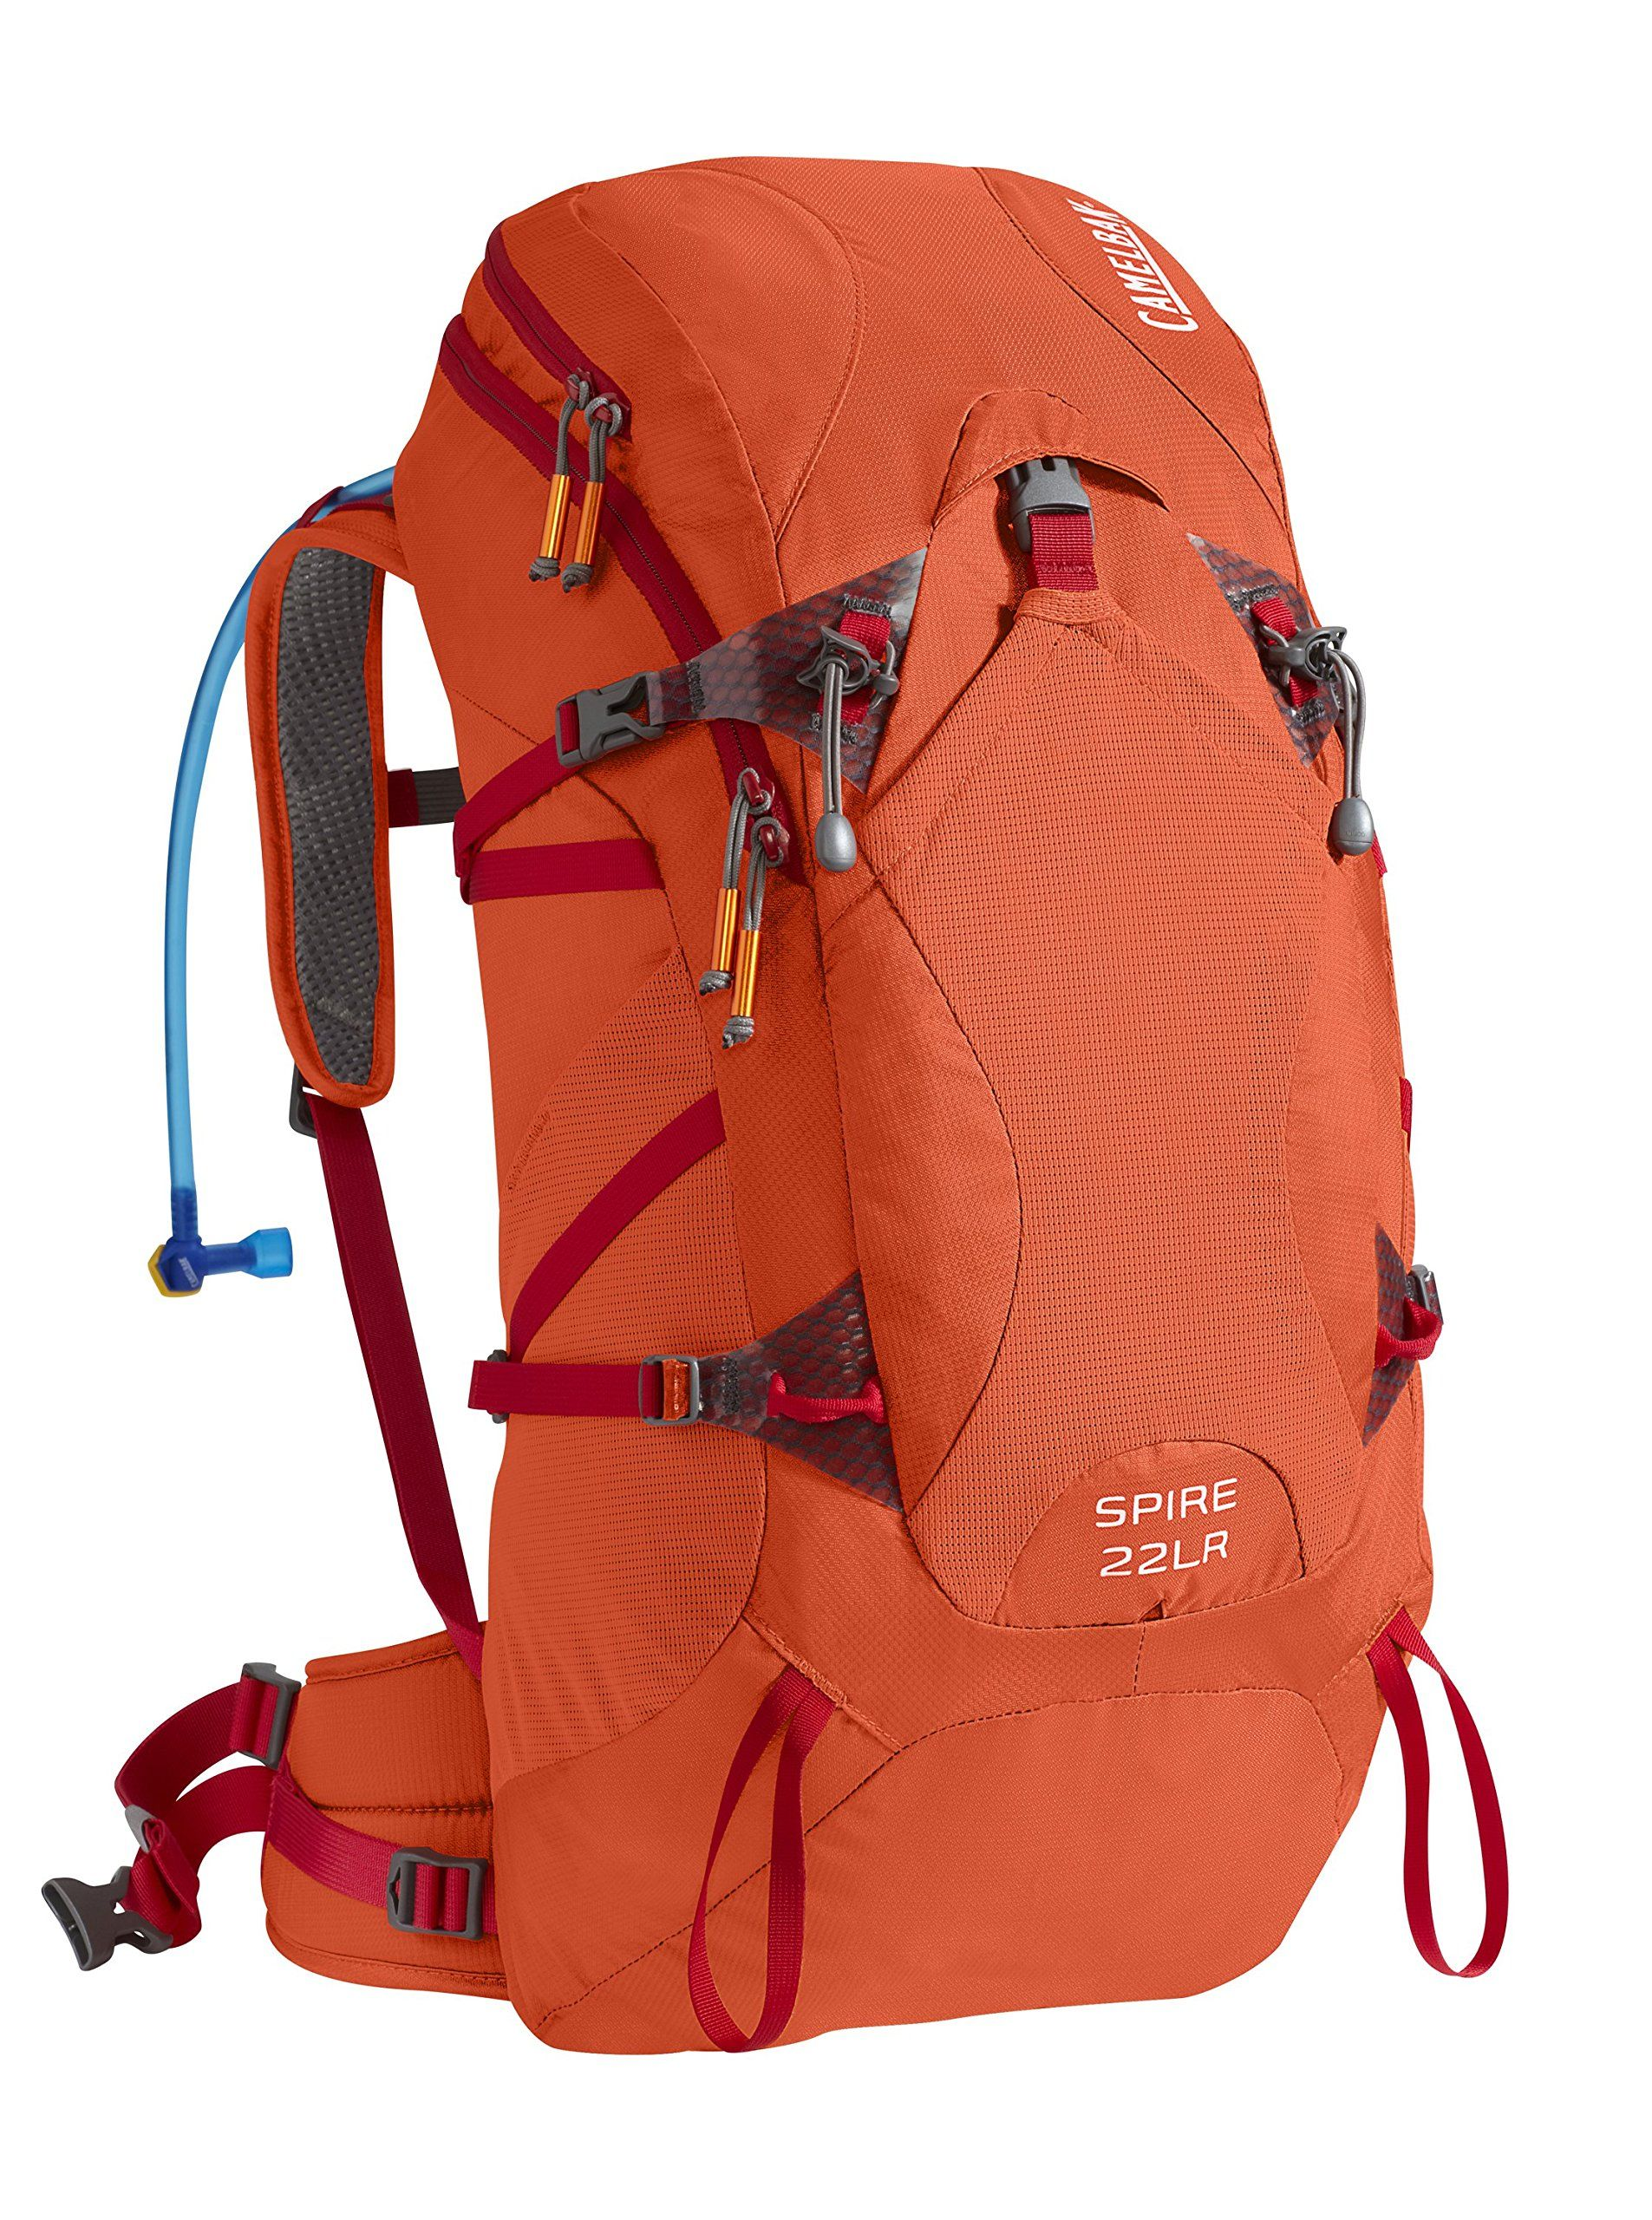 e705fff301 CamelBak Women's 2016 Spire 22 LR Hydration Pack, Cherry Tomato/Samba. The  spire offers superior stability and best-in-class breathability in a  technical, ...